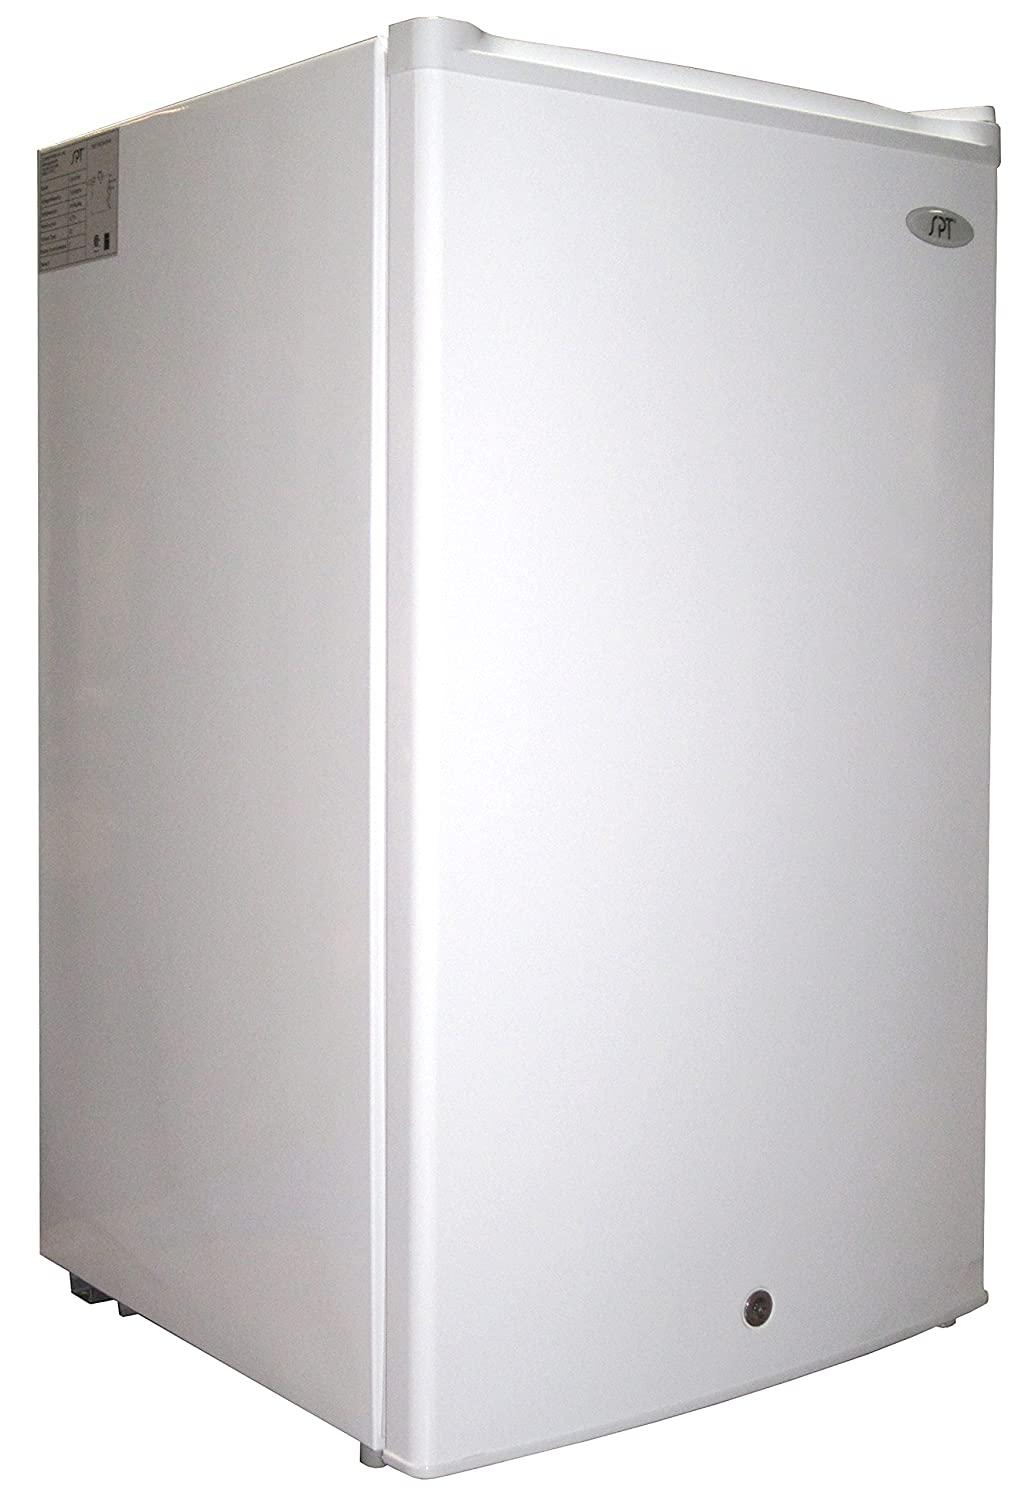 SPT UF-304W Energy Star Upright Freezer, 3.0 Cubic Feet, White